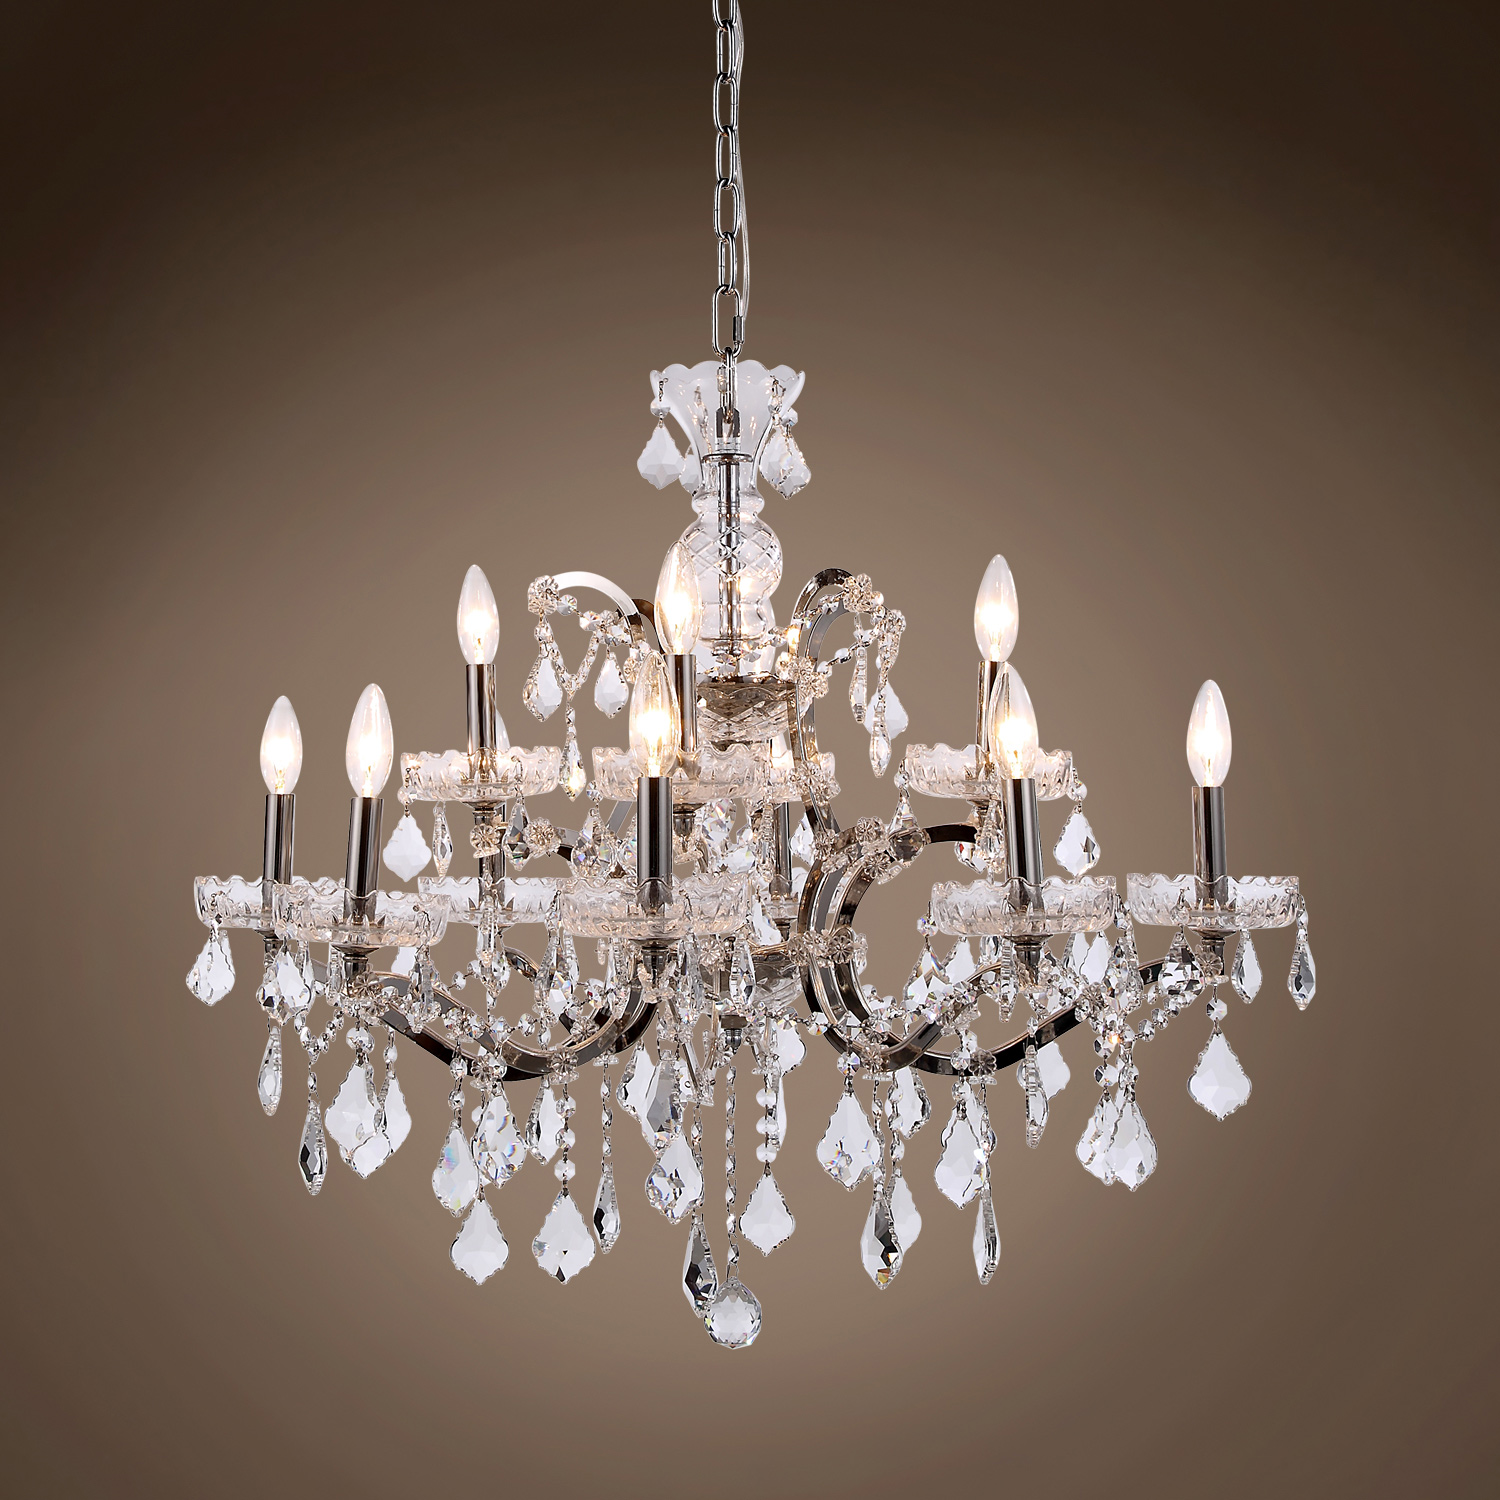 making in hongkong co chandeliers iron wrought specialize chandelier list and we crystal swarovski ltd sunwe lighting